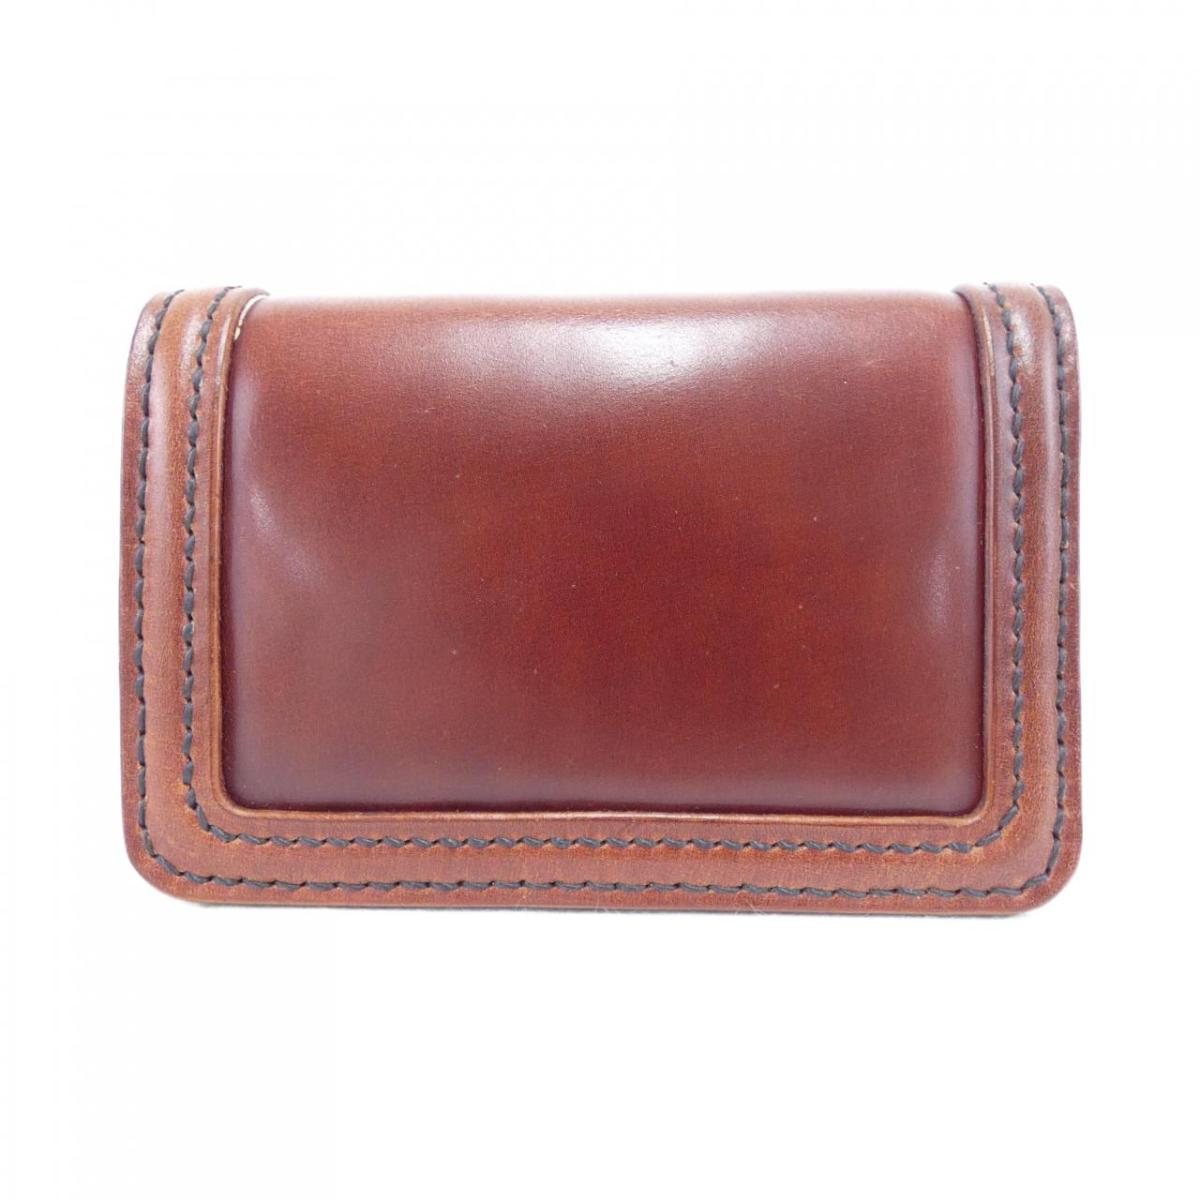 【未使用品】アールジェービー R.J.B(FLAT HEAD) CARD CASE FH-V003【中古】